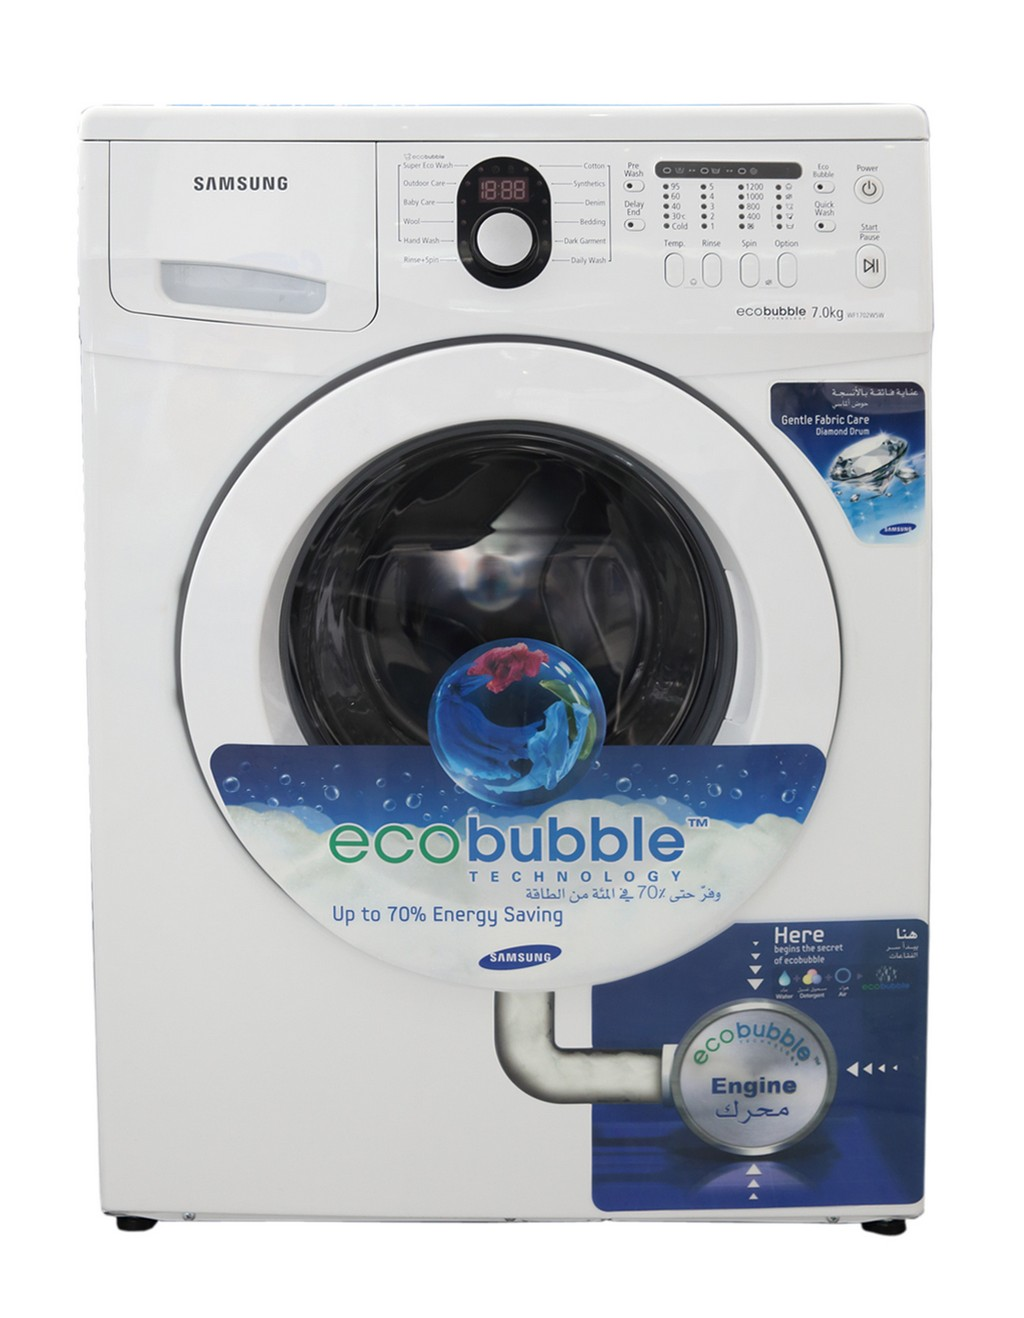 samsung washer, compact washing machine, maytag washer